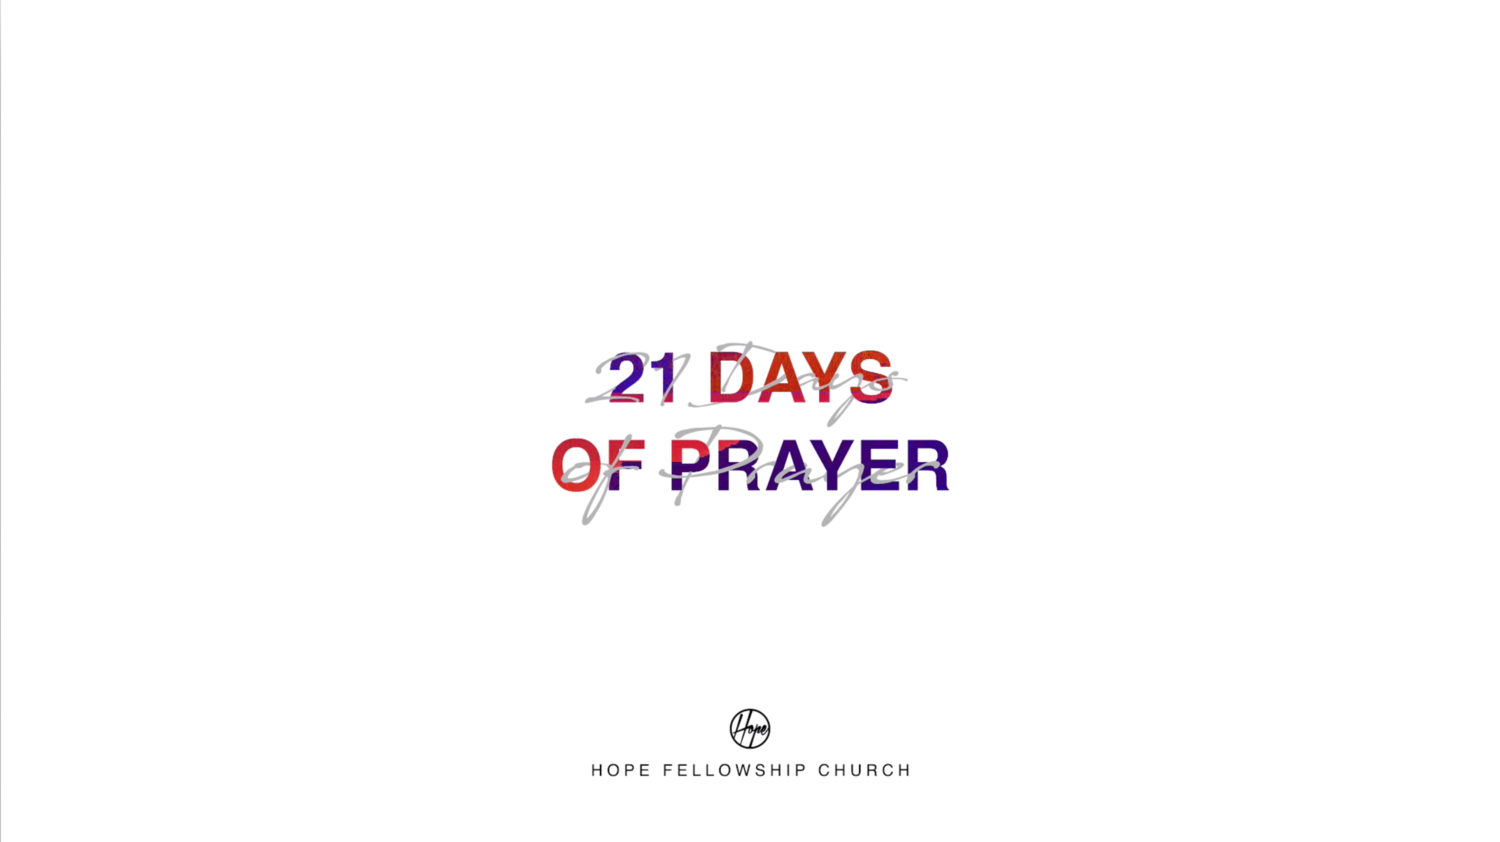 21 Days of Prayer Week 4